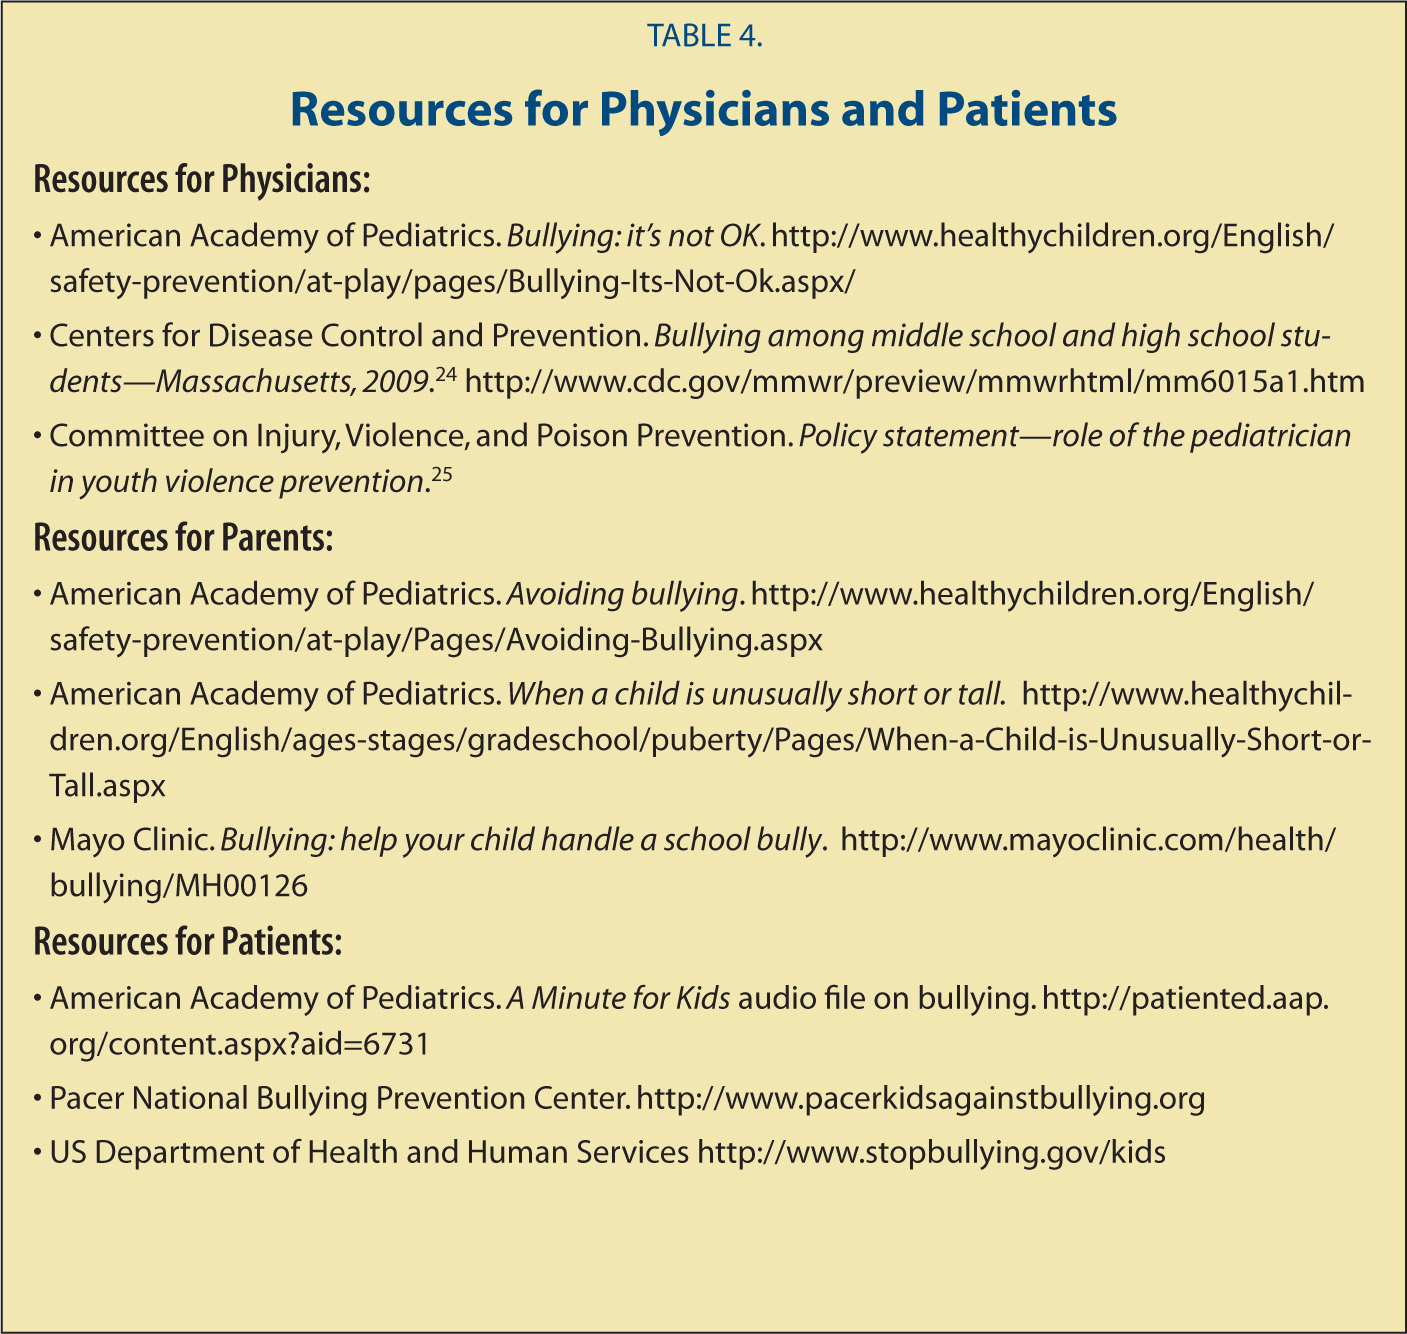 Resources for Physicians and Patients